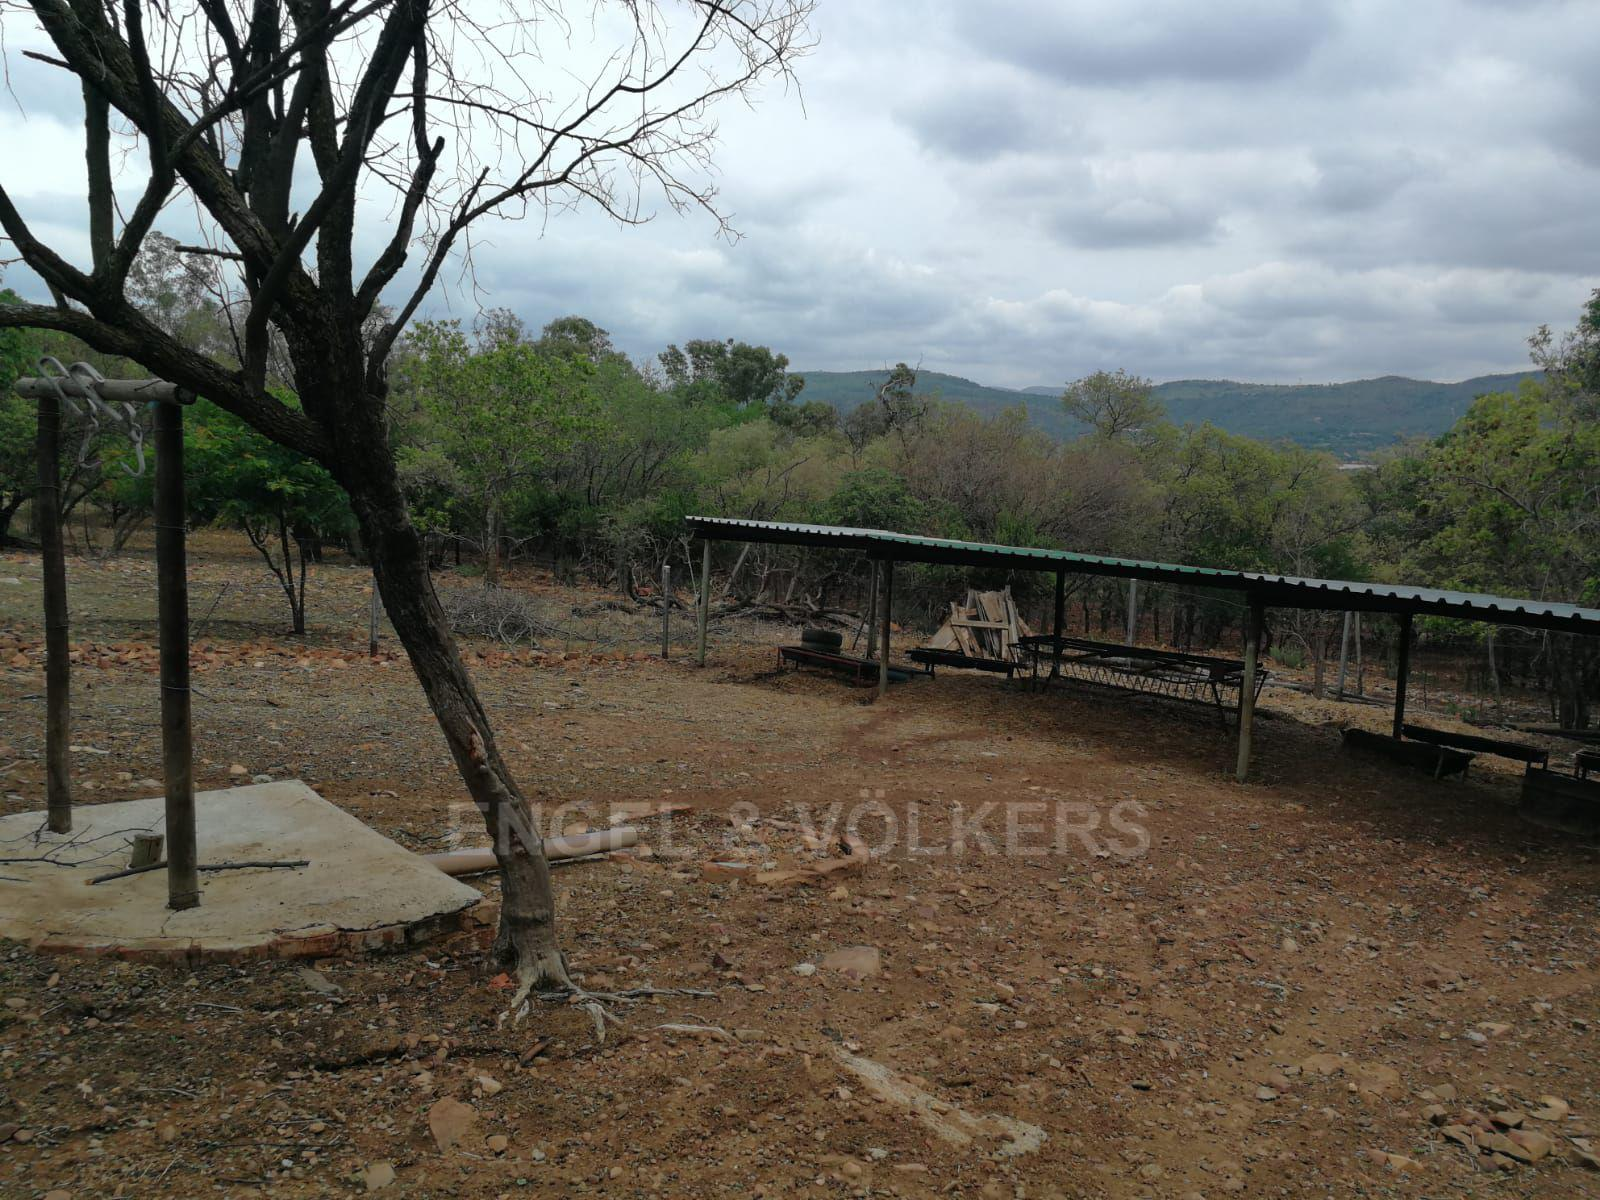 Land in Hartbeespoort Dam Area - Gentleman farming